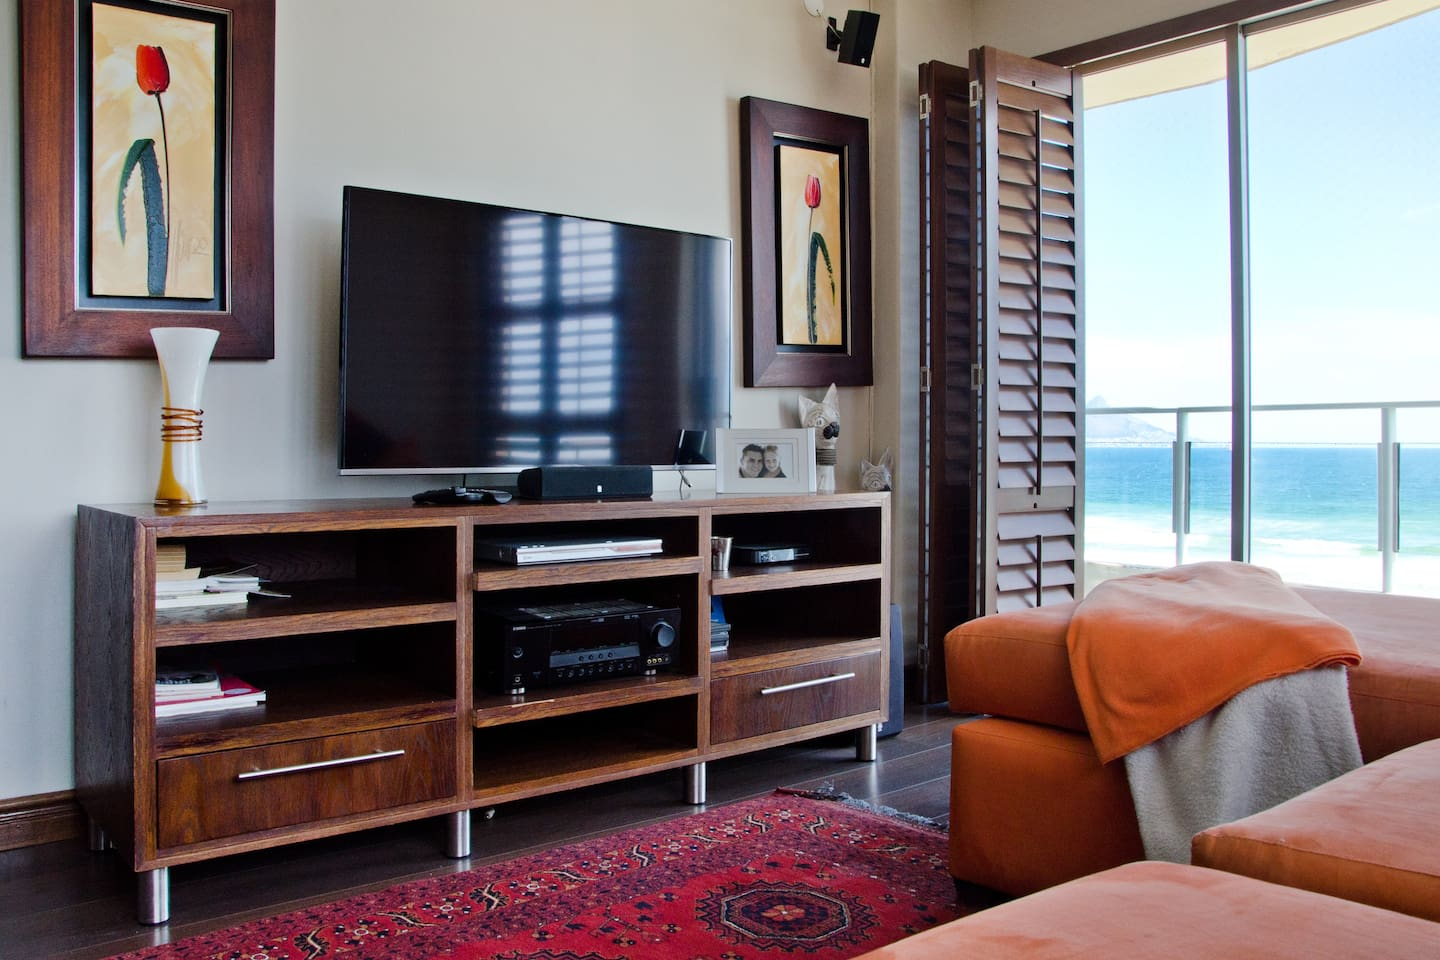 Balcony with amazing views of Table Mountain and the Beach! Full DSTV package and unlimited WIFI available for guests use.